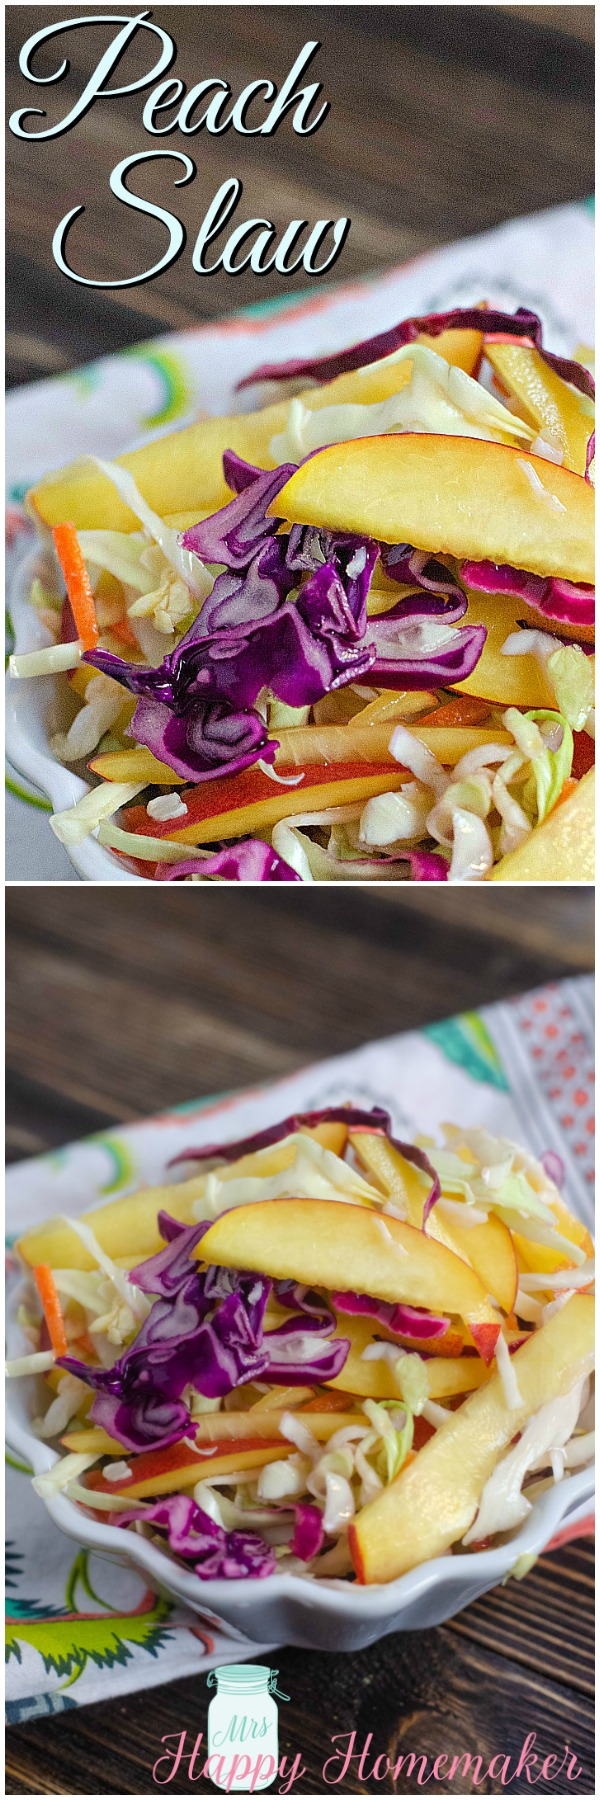 This Fresh Peach Slaw is light, refreshing, and oh so good. All you need is 4 ingredients plus salt and pepper too – easy peasy! | MrsHappyHomemaker.com @MrsHappyHomemaker